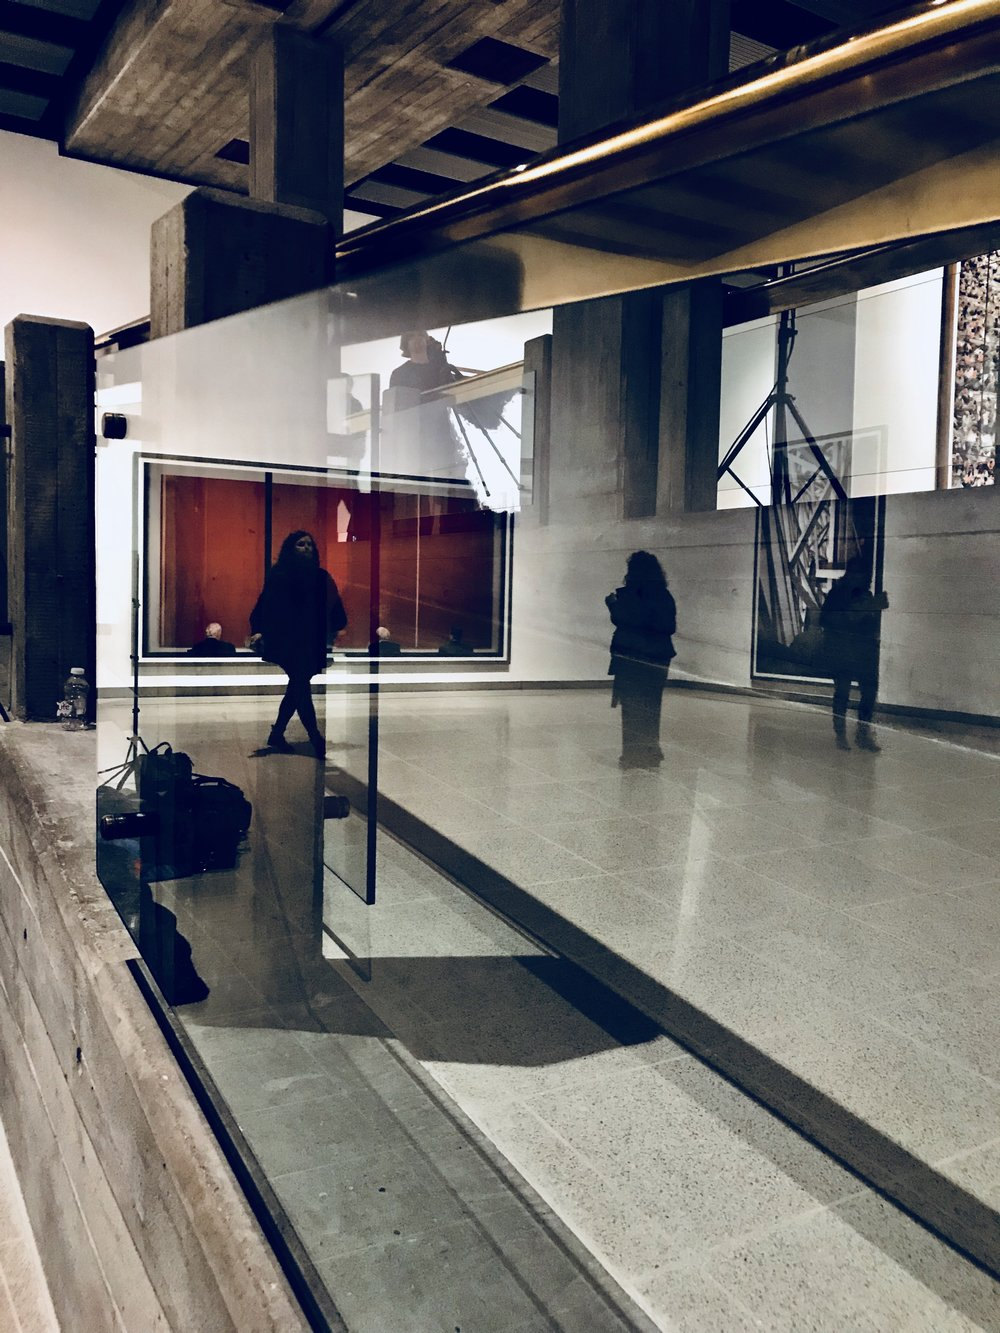 im becoming a reflections addict - the space of the gallery is vast and the combinations of materials used show off the art work superbly without feeling claustraphobic - its a beautiful sense of space